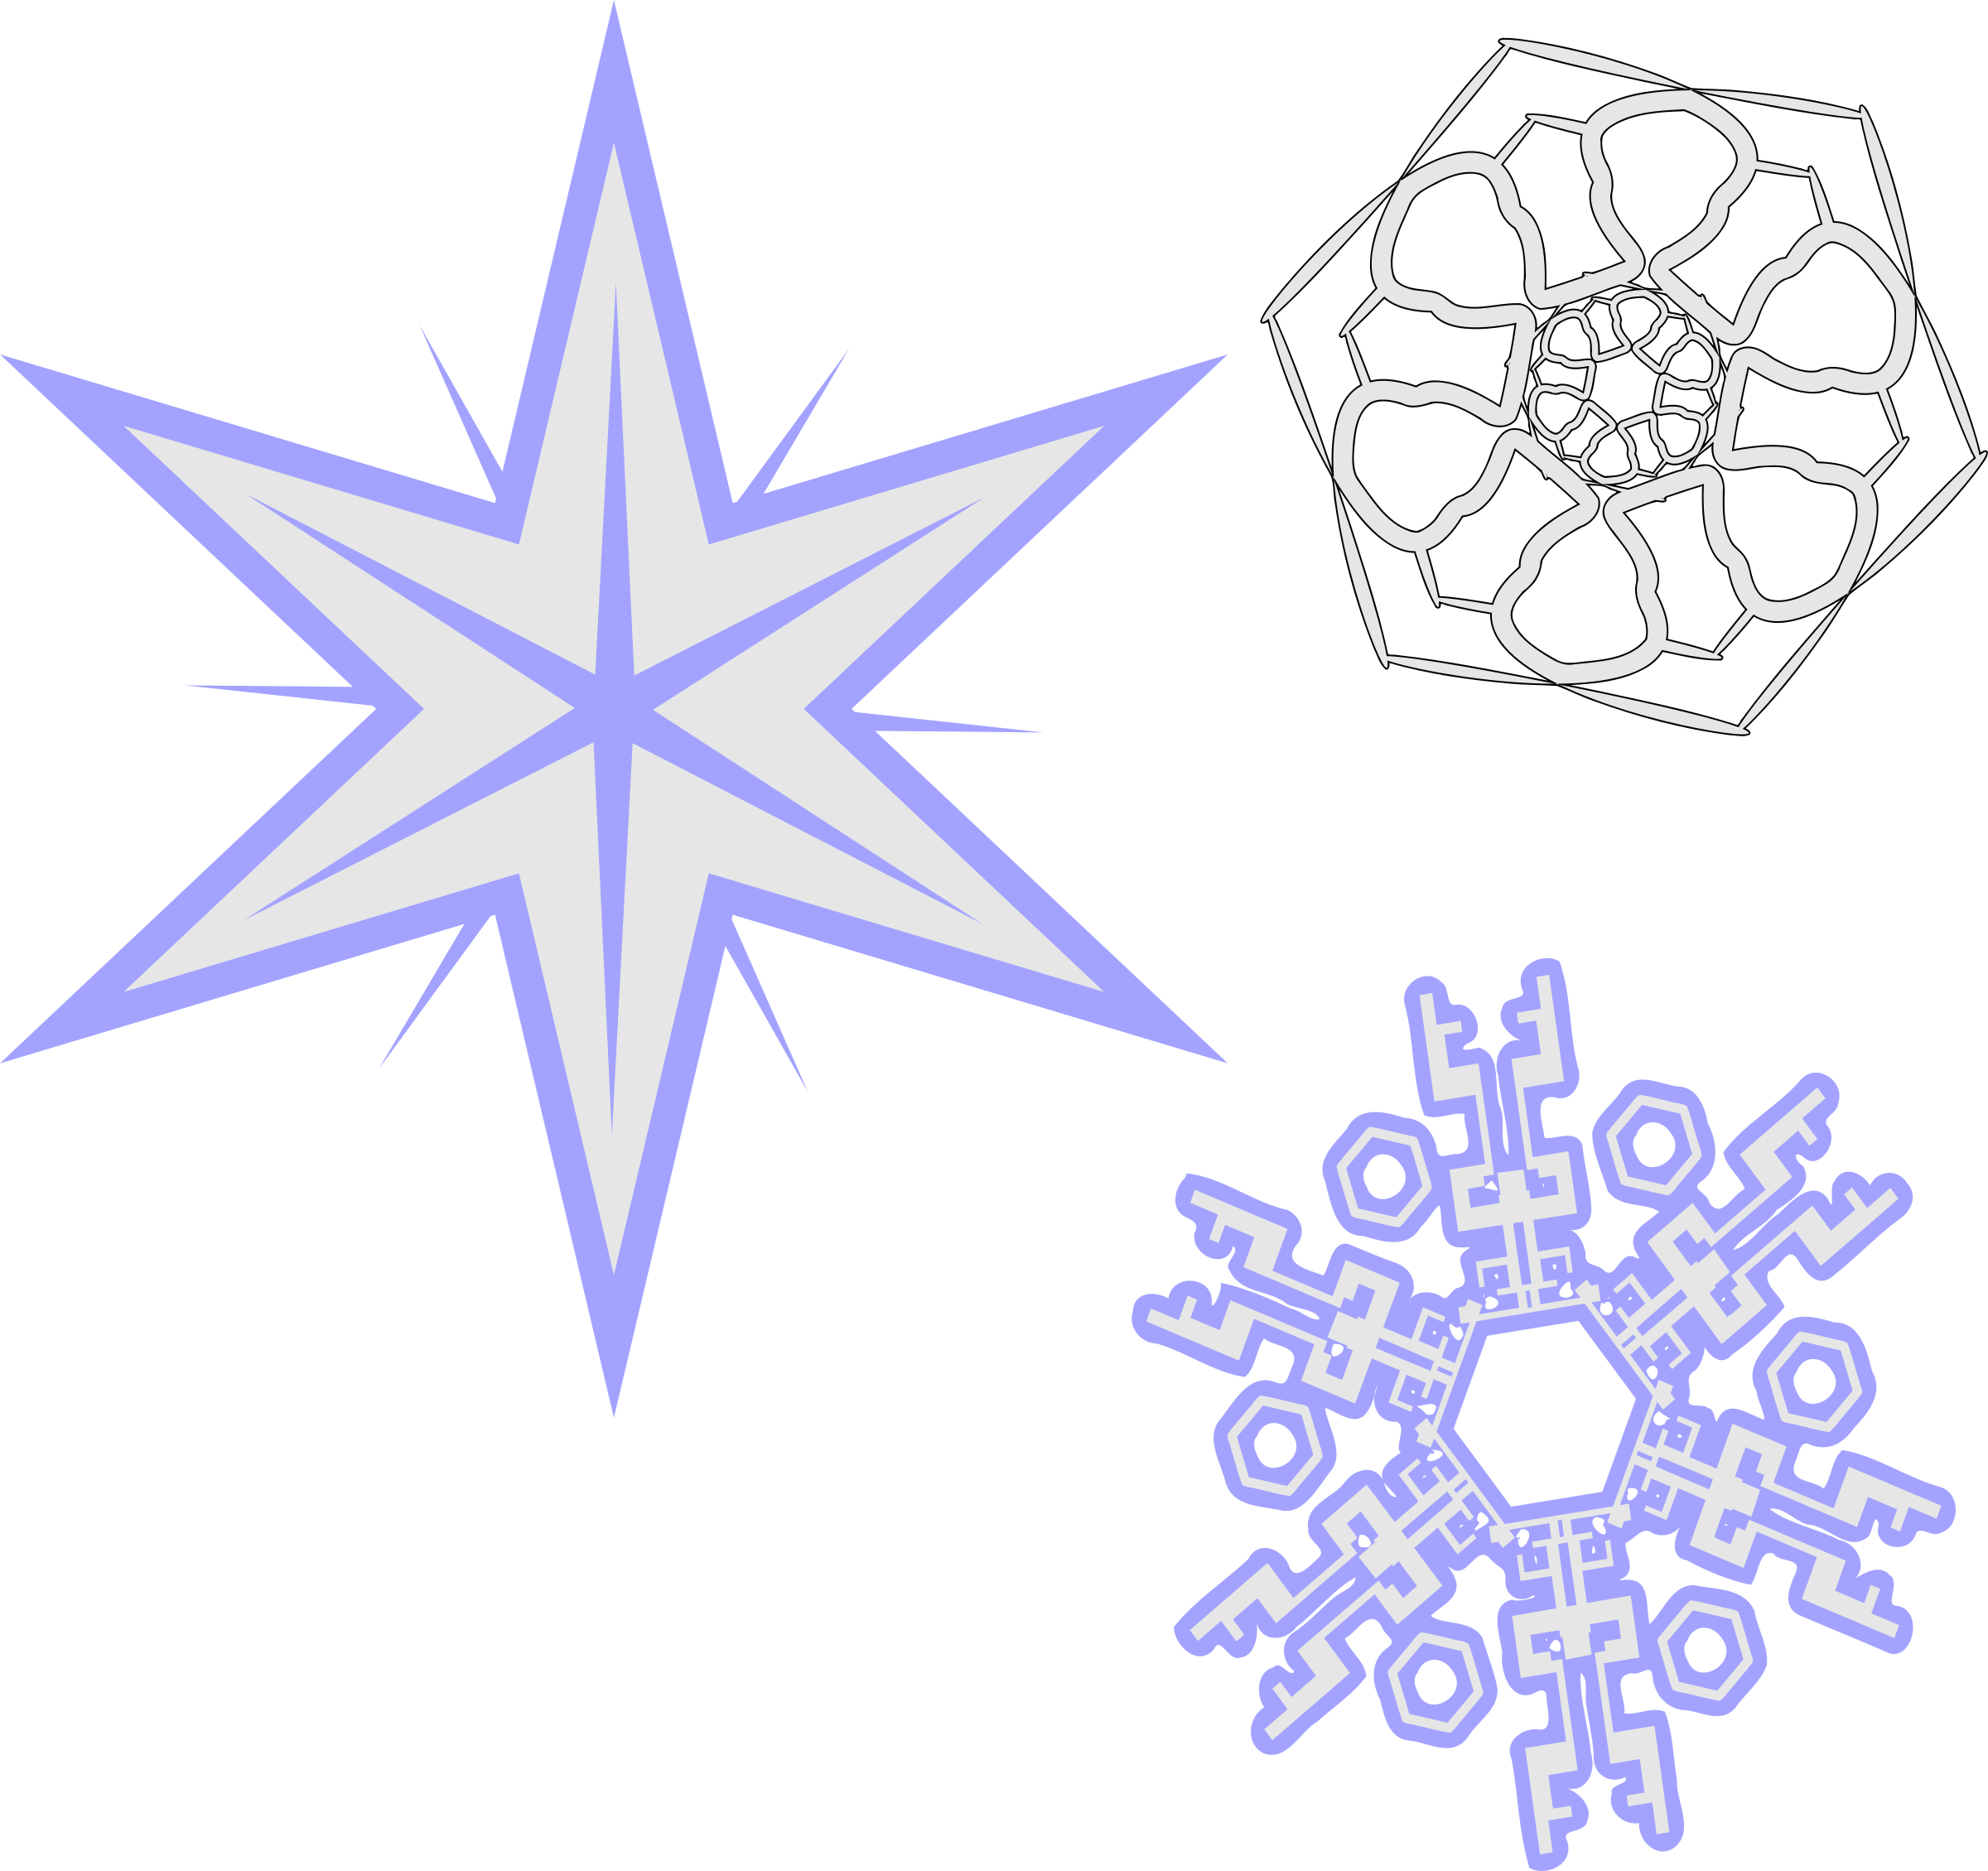 Clipart Collection Snowflakes Png image #41279